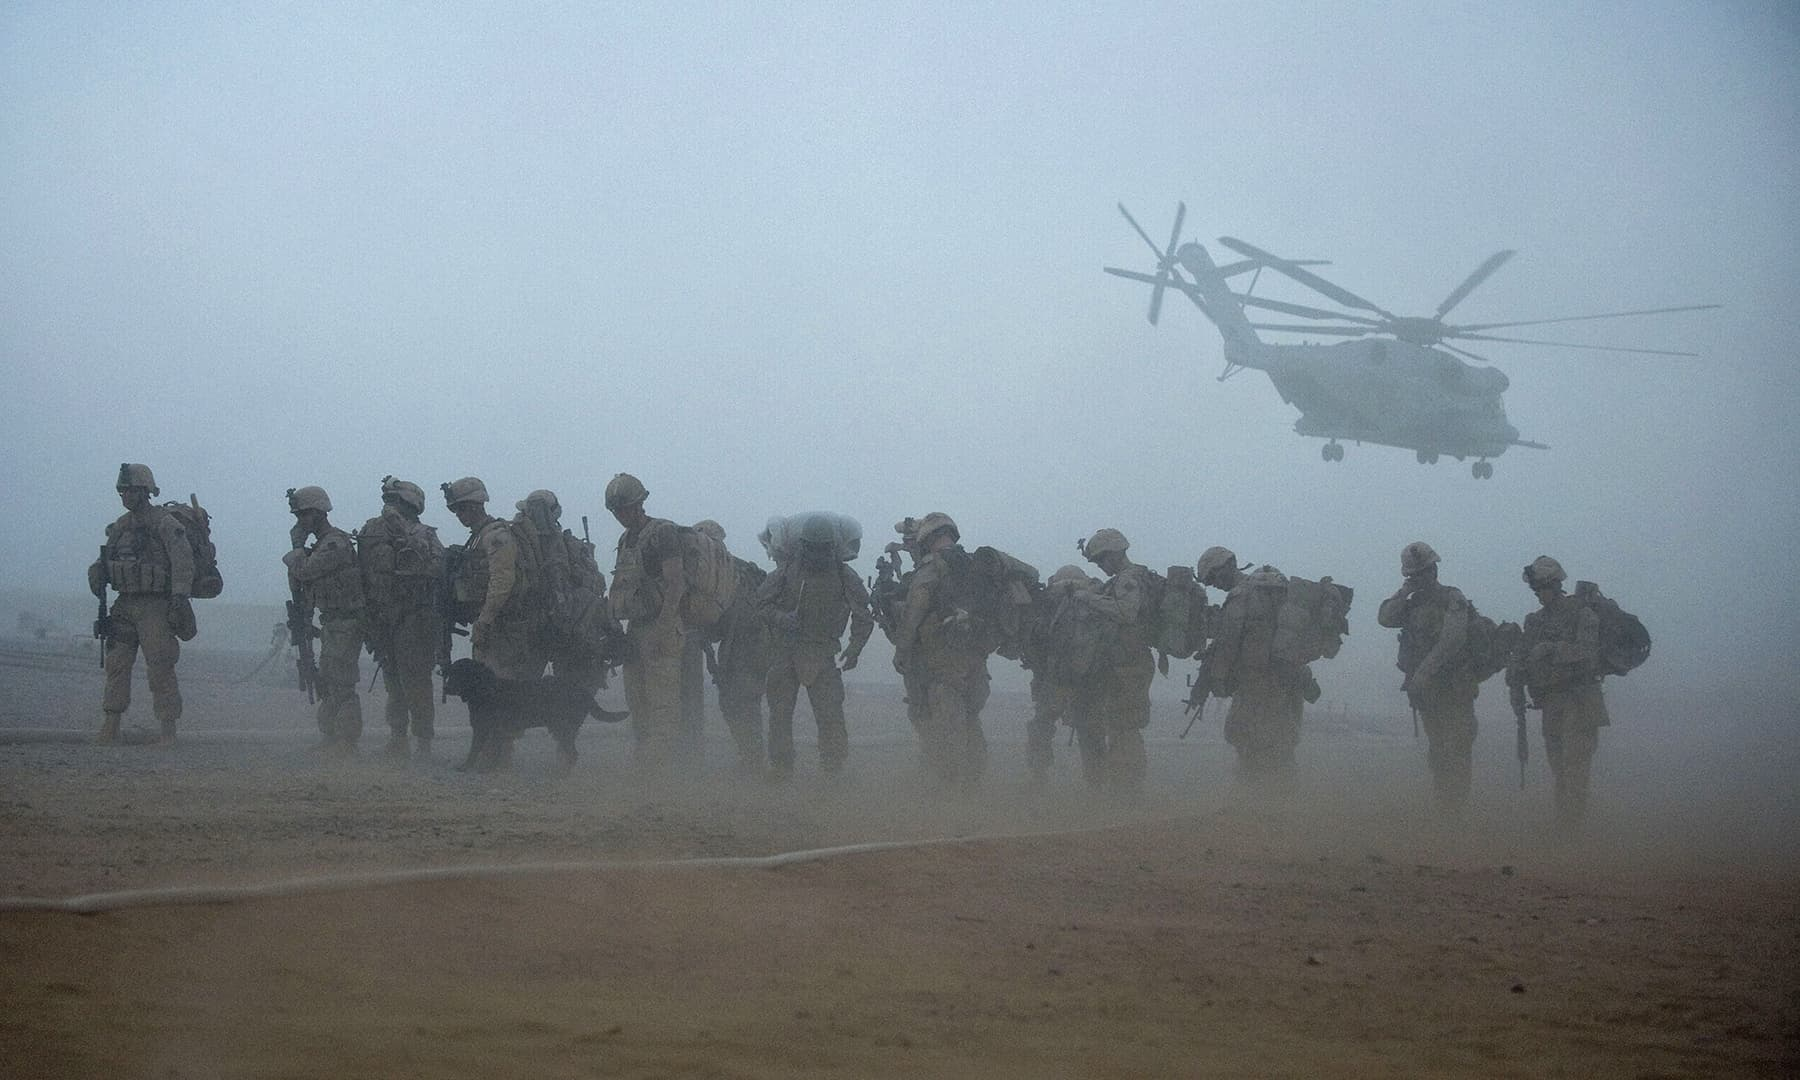 In this file photo taken on July 2, 2009, US Marines from the 2nd Battalion, 8th Marine Regiment of the 2nd Marine Expeditionary Brigade wait for helicopter transport as part of Operation Khanjar at Camp Dwyer in Helmand province in Afghanistan. — AFP